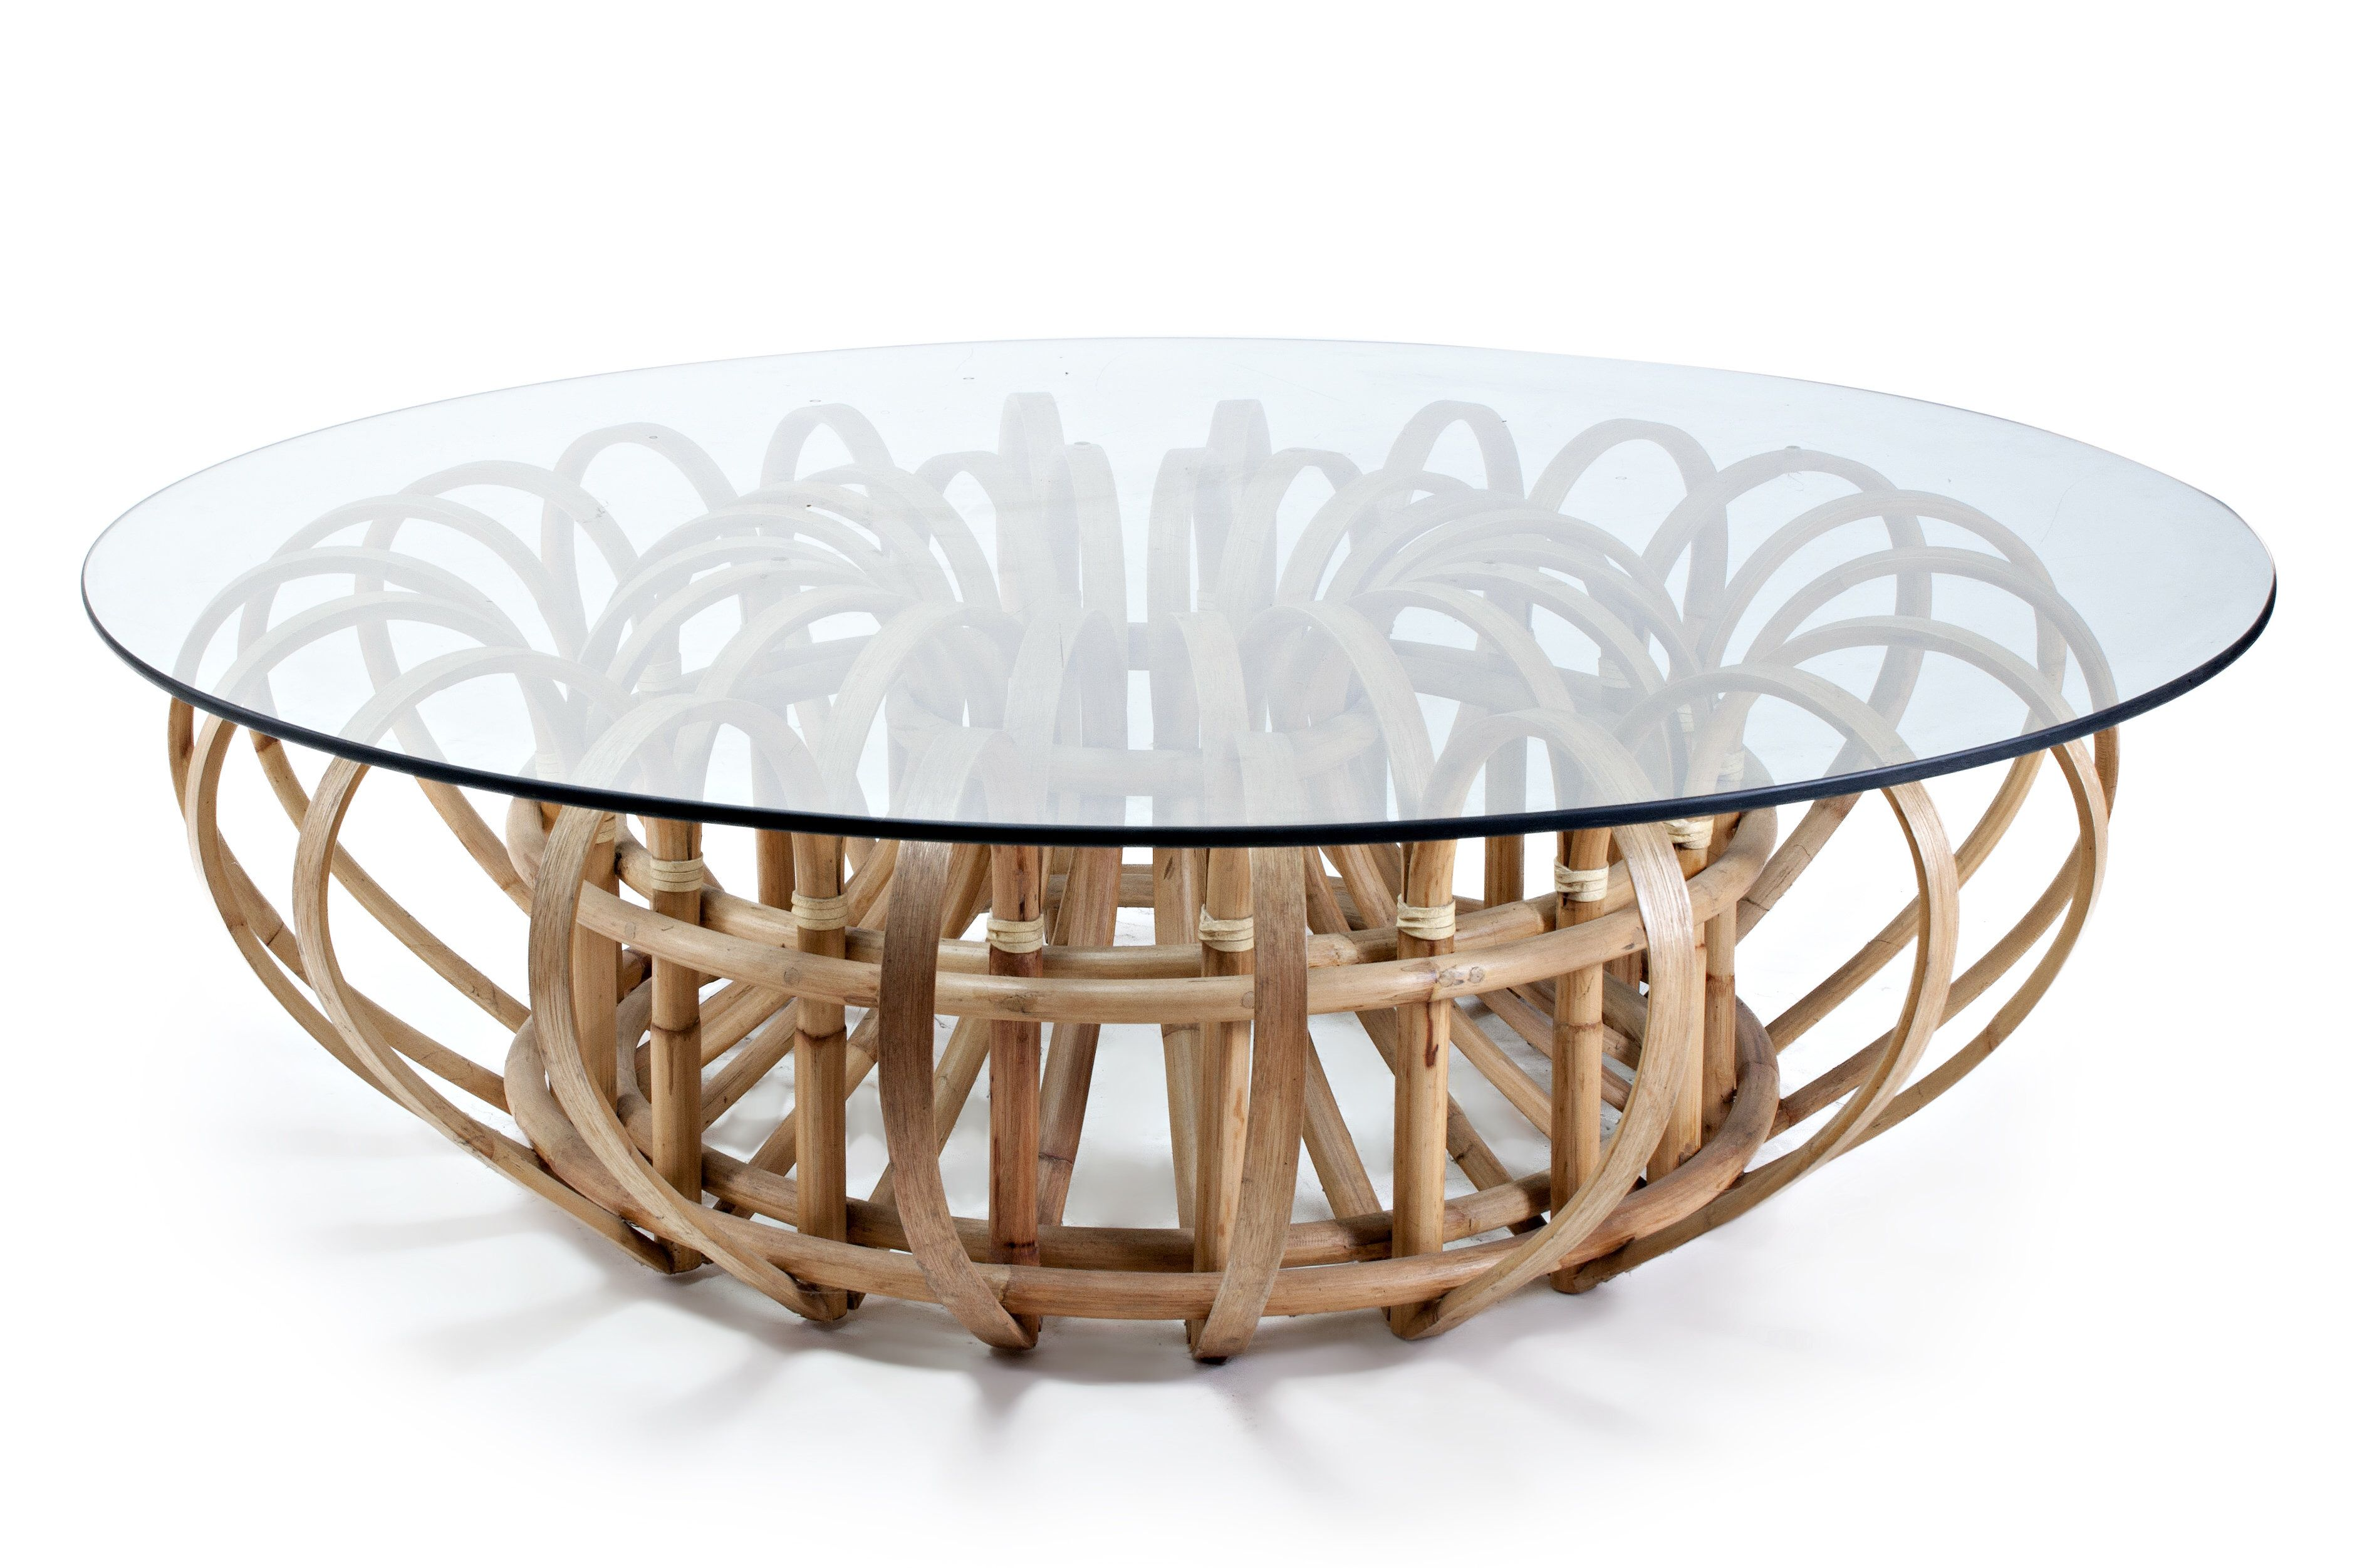 Aiden Frame Coffee Table Coffee Table Table Interior Accents [ 2503 x 3770 Pixel ]